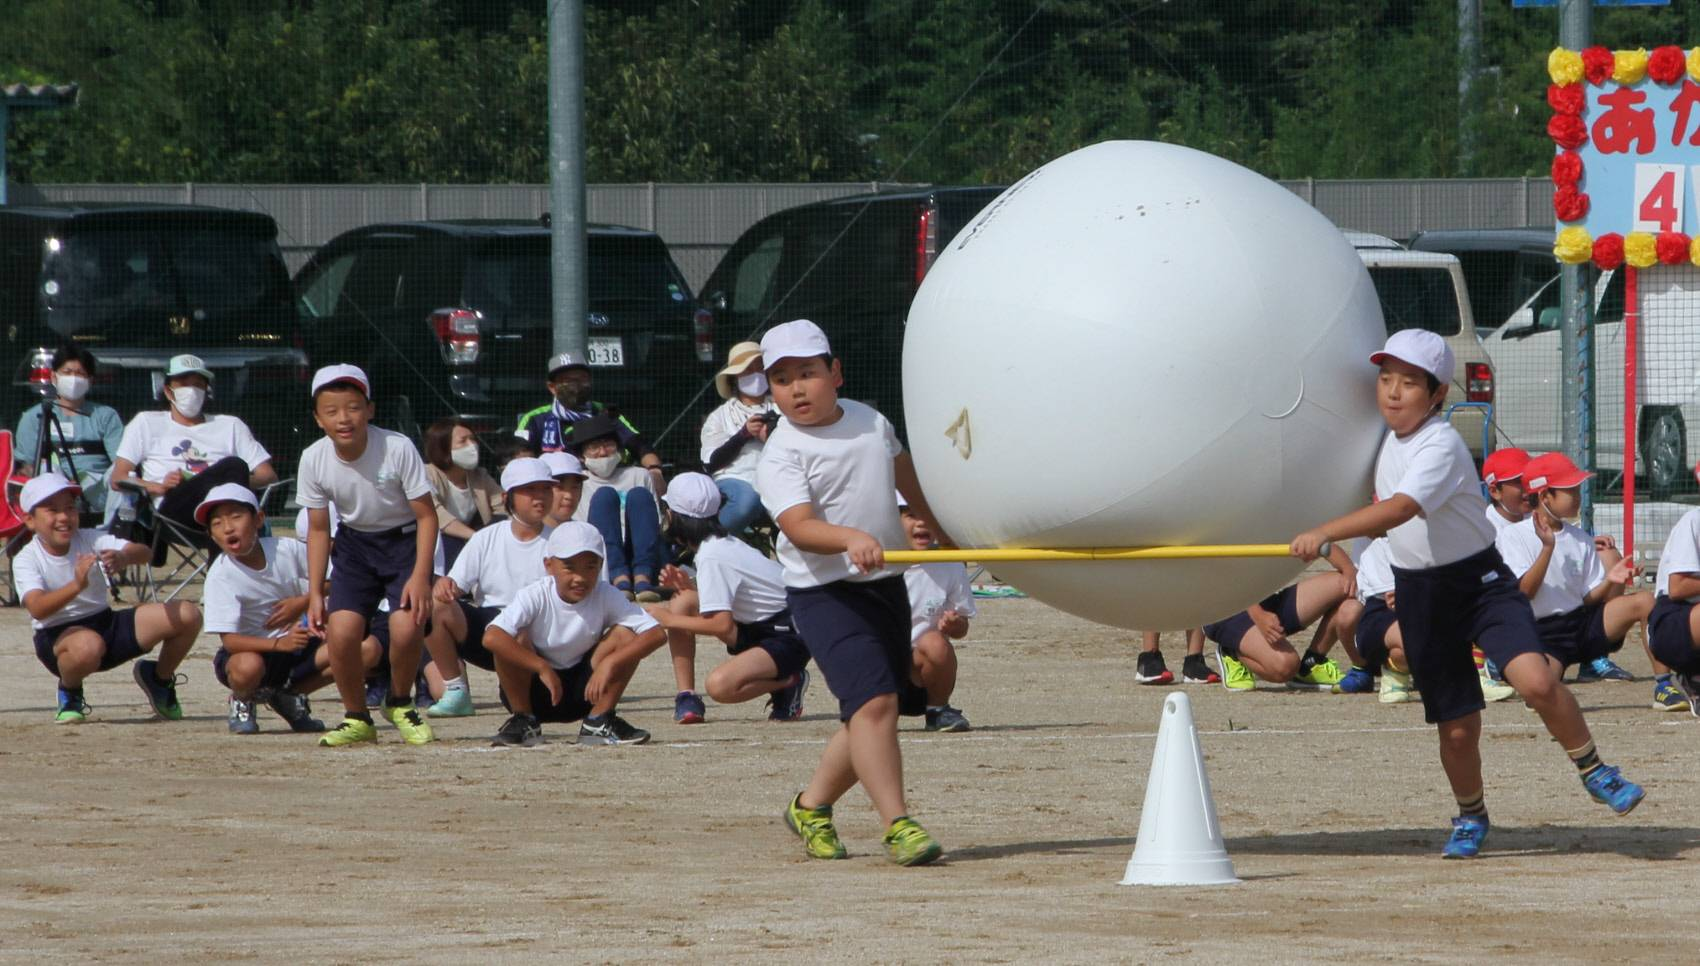 Students in Gero, Gifu Prefecture, participate in a race during sports day in September, holding two sticks to carry a big ball instead of rolling it with their hands.   CHUNICHI SHIMBUN